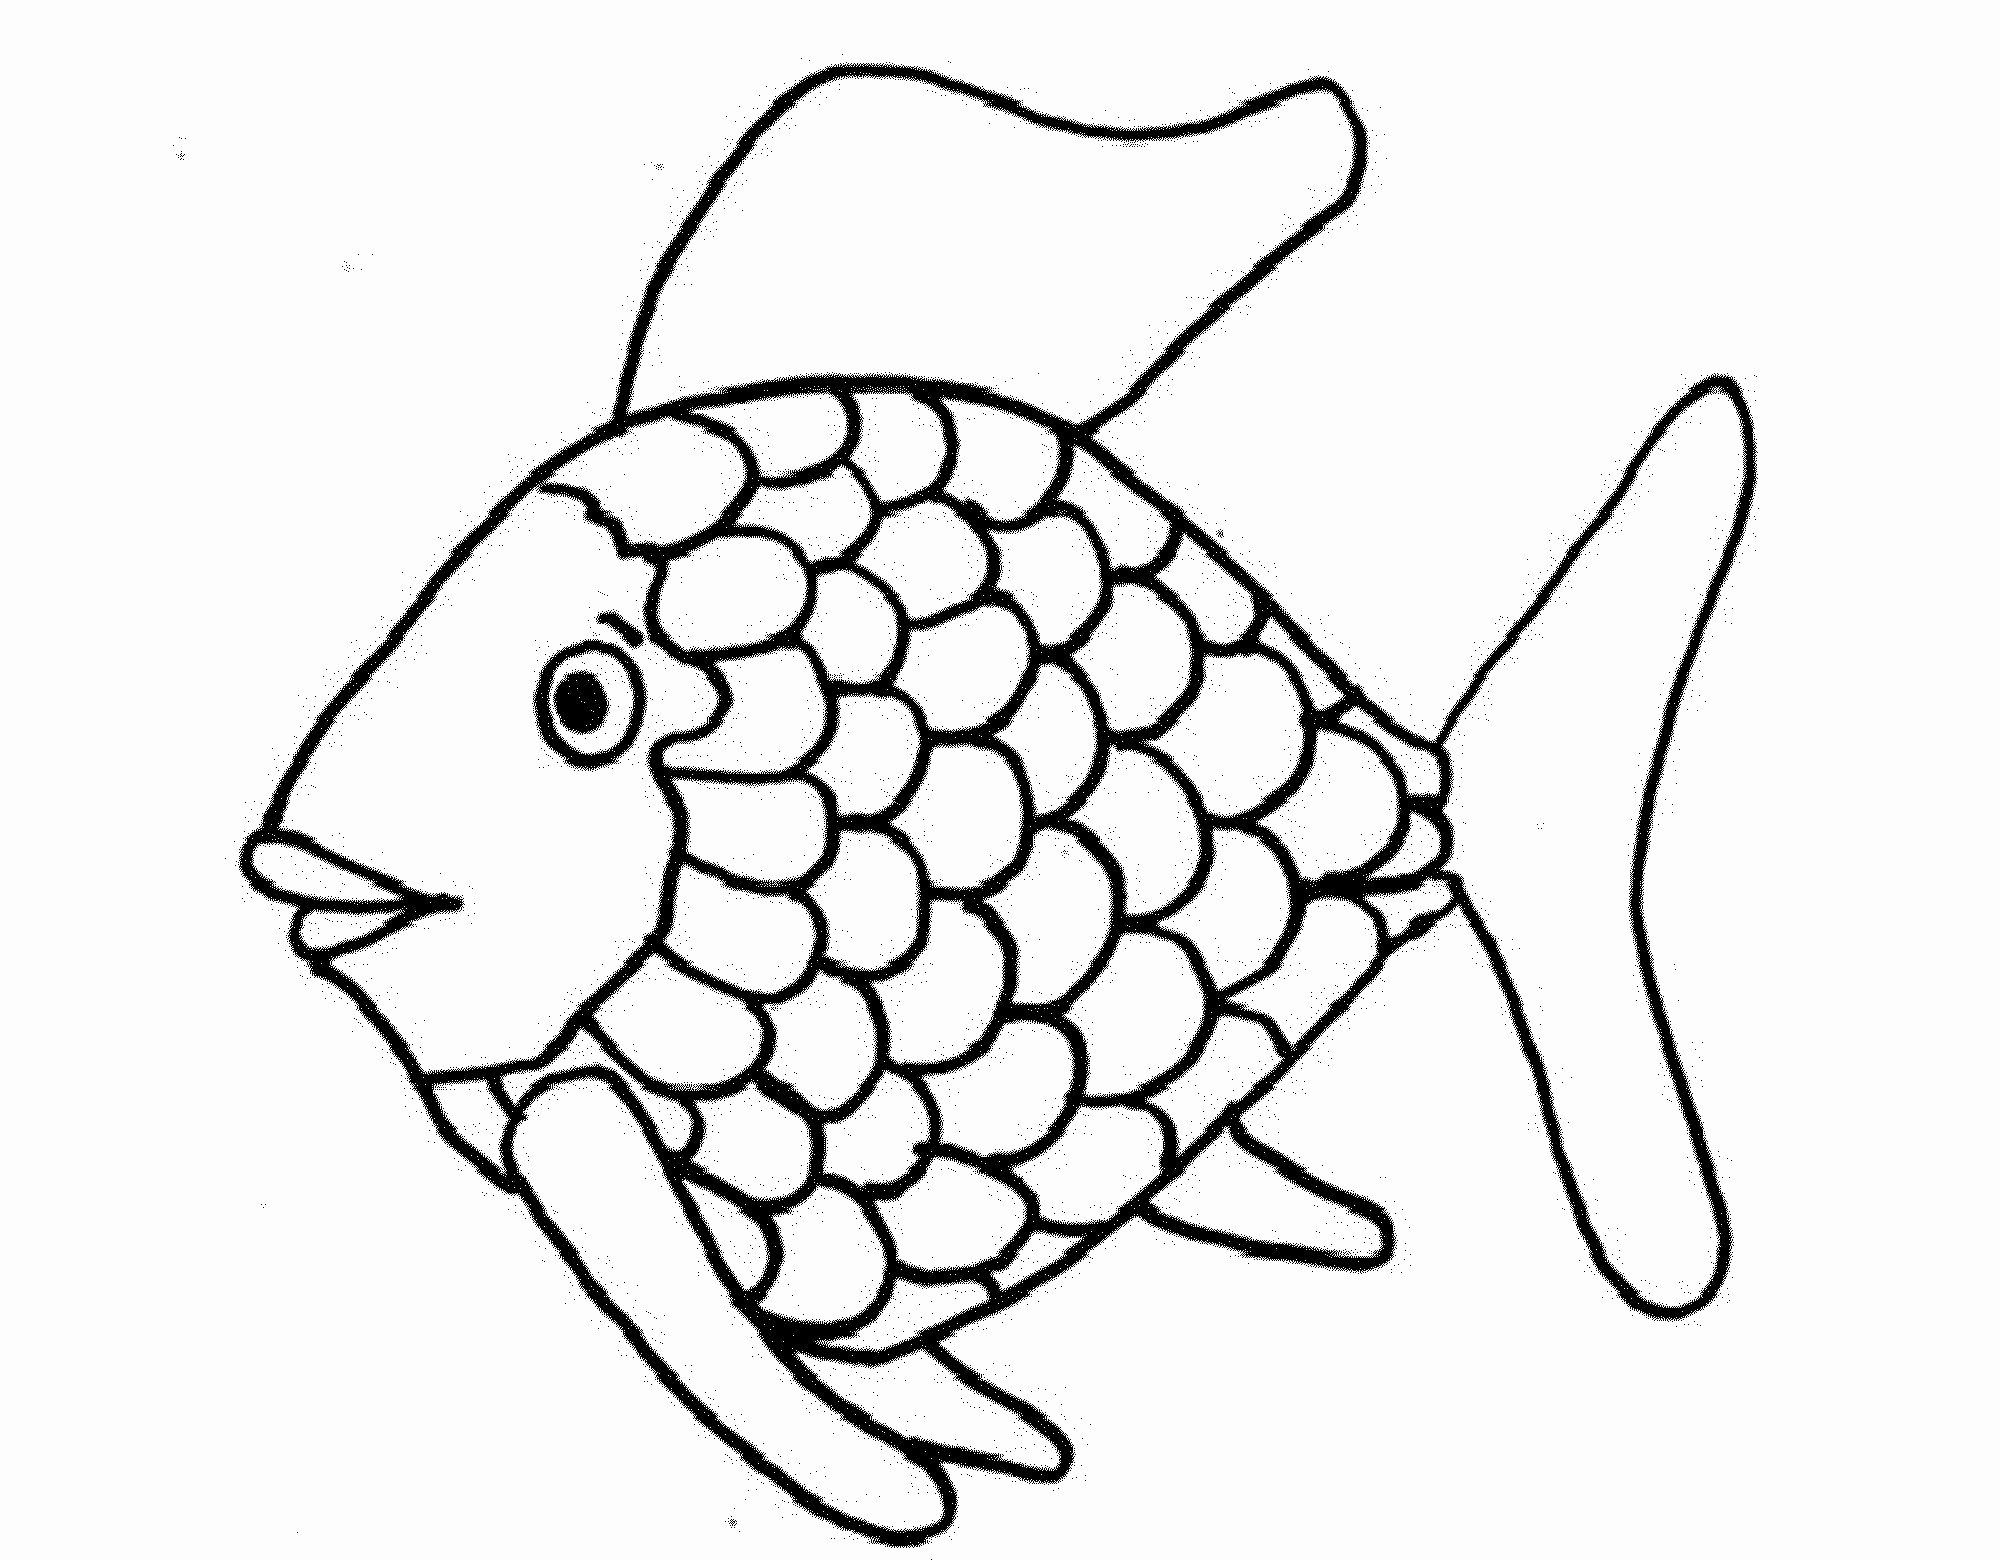 Cartoon Drawing Book Pdf Unique 30 Fish Coloring Pages Pdf Collection Coloring Sheet In 2020 Fish Coloring Page Rainbow Fish Coloring Page Coloring Pages Inspirational